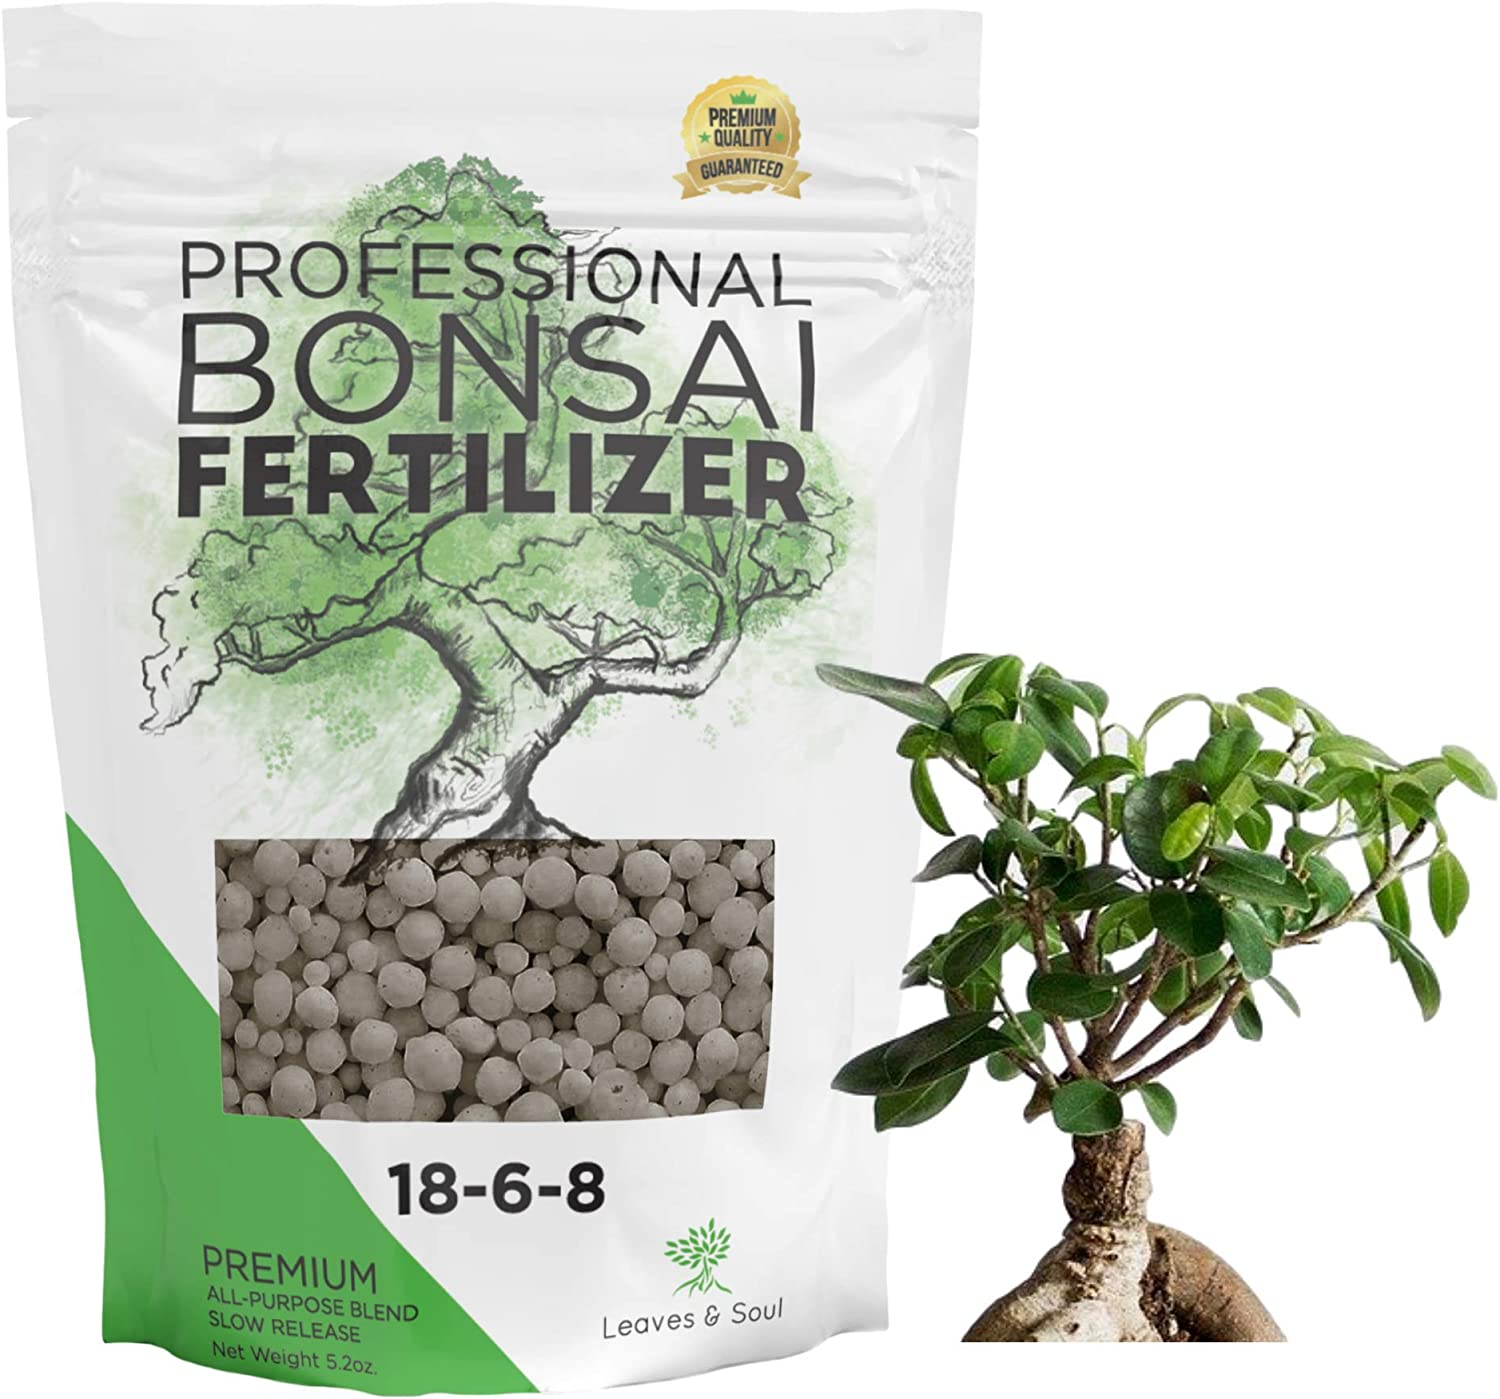 Leaves and Soul Bonsai Fertilizer Pellets |18-6-8 Slow Release Pellets for Seedlings, Mature Plants, All Tree Types | Multi-Purpose Blend & Gardening Supplies, No Fillers | 5.2 oz Resealable Packaging